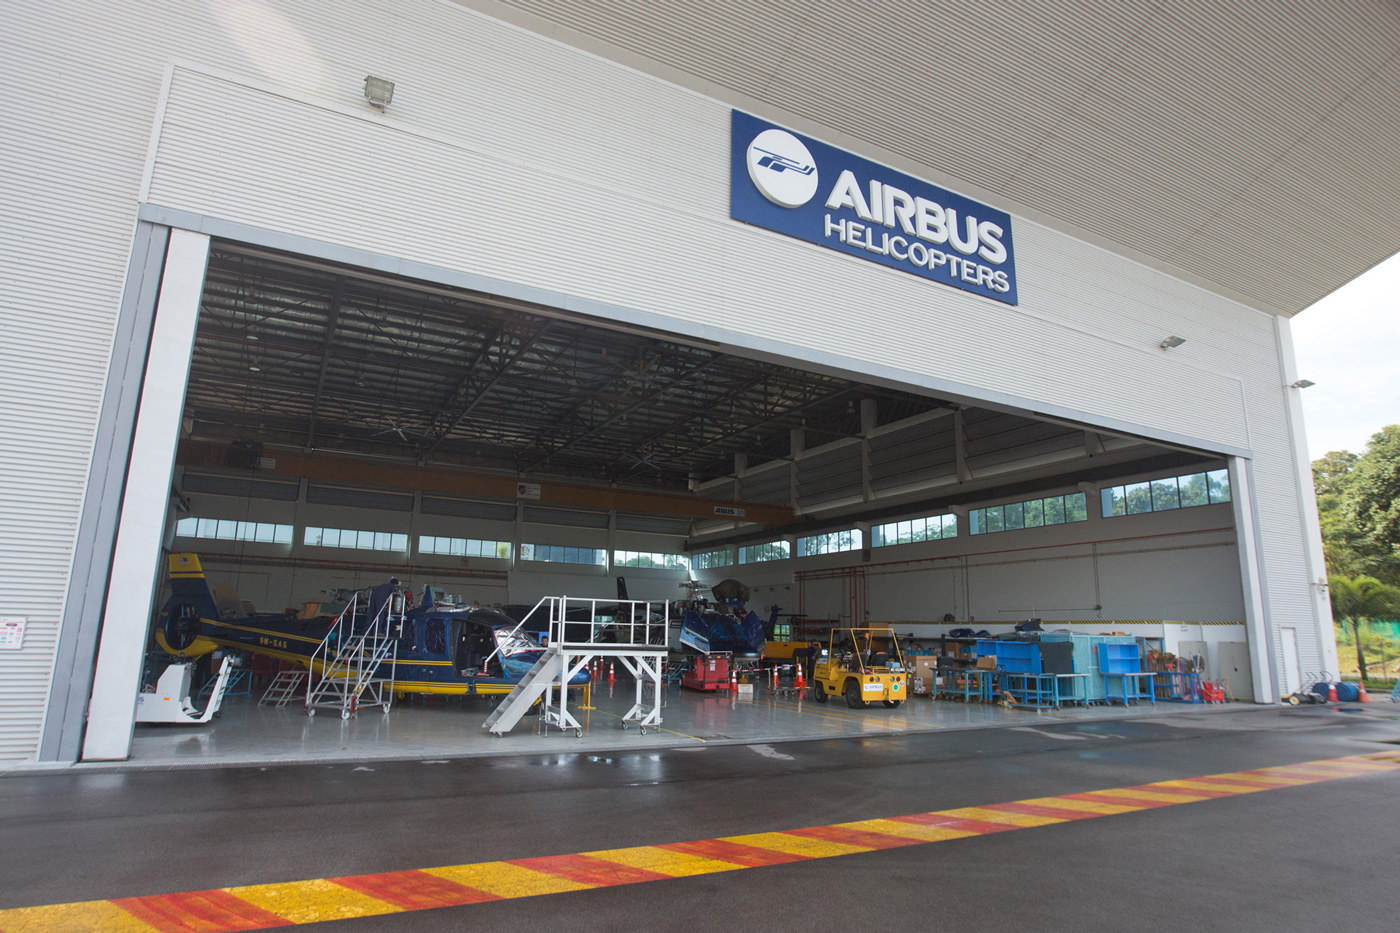 Airbus Helicopters Boosts Singapore Center, Logs Orders